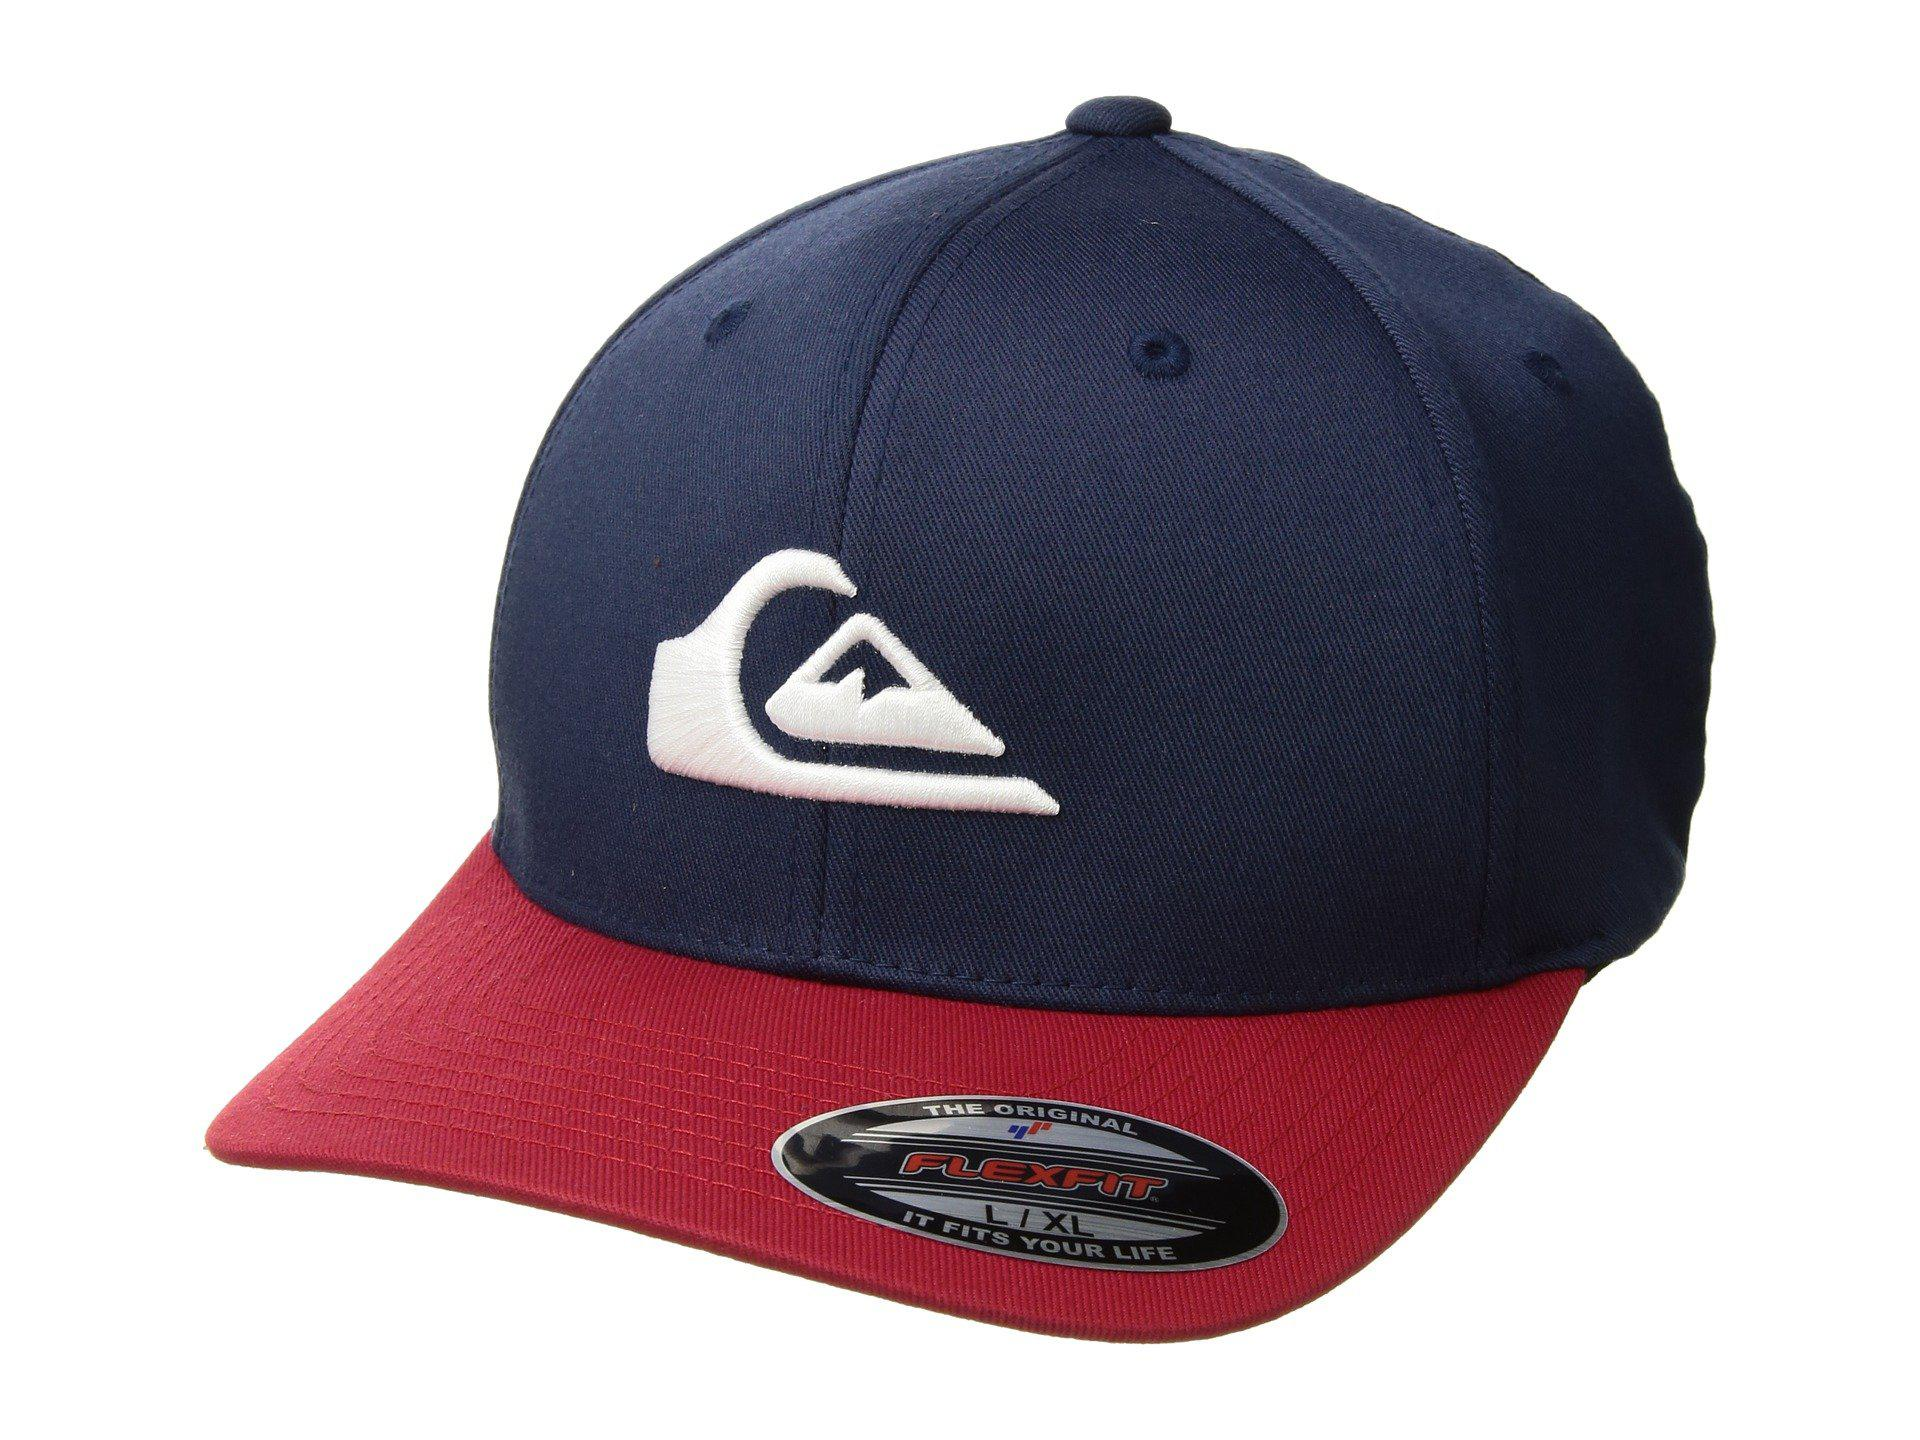 c27117bfdd953 ... france quiksilver. mens blue mountain and wave hat cb845 97dd9